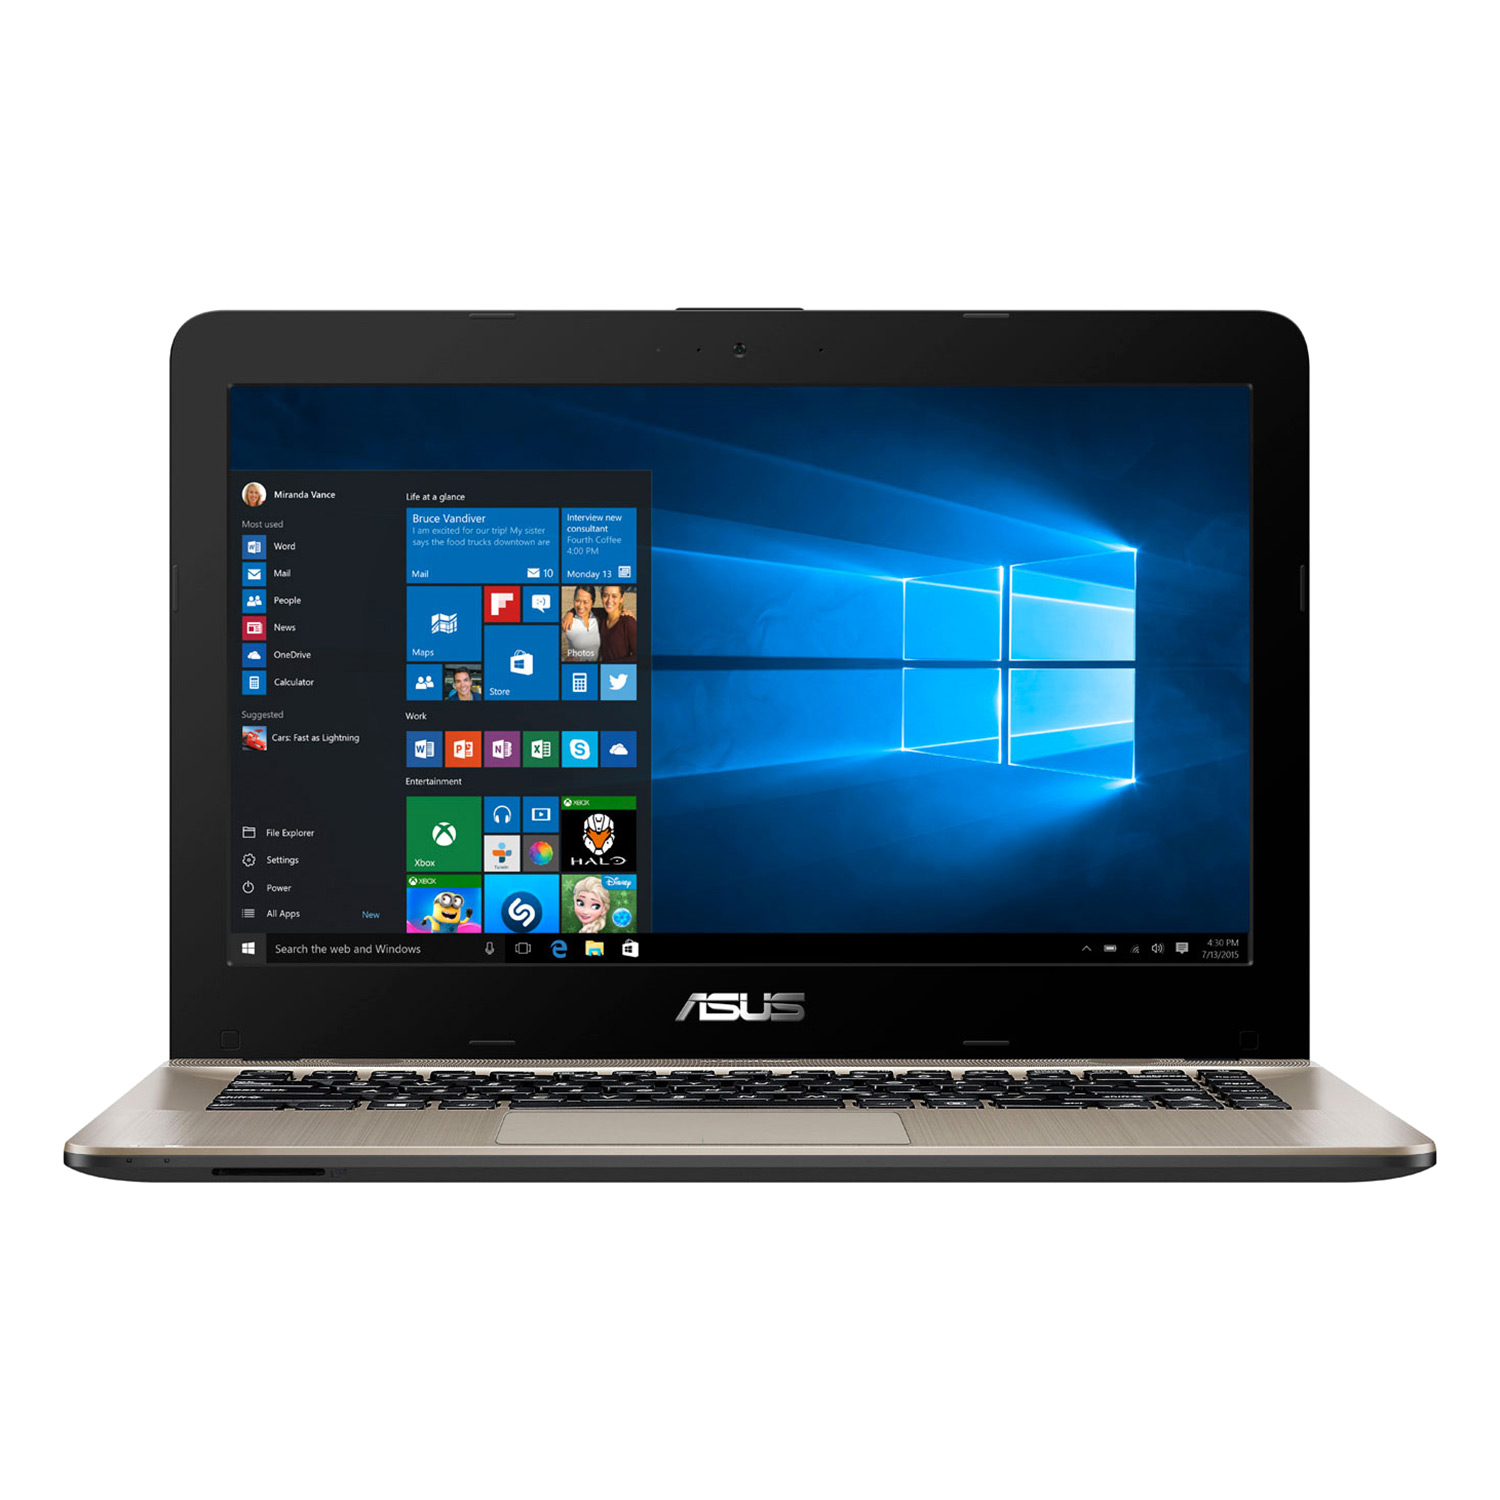 Laptop Asus X441UA-WX016D Core i3-6100U